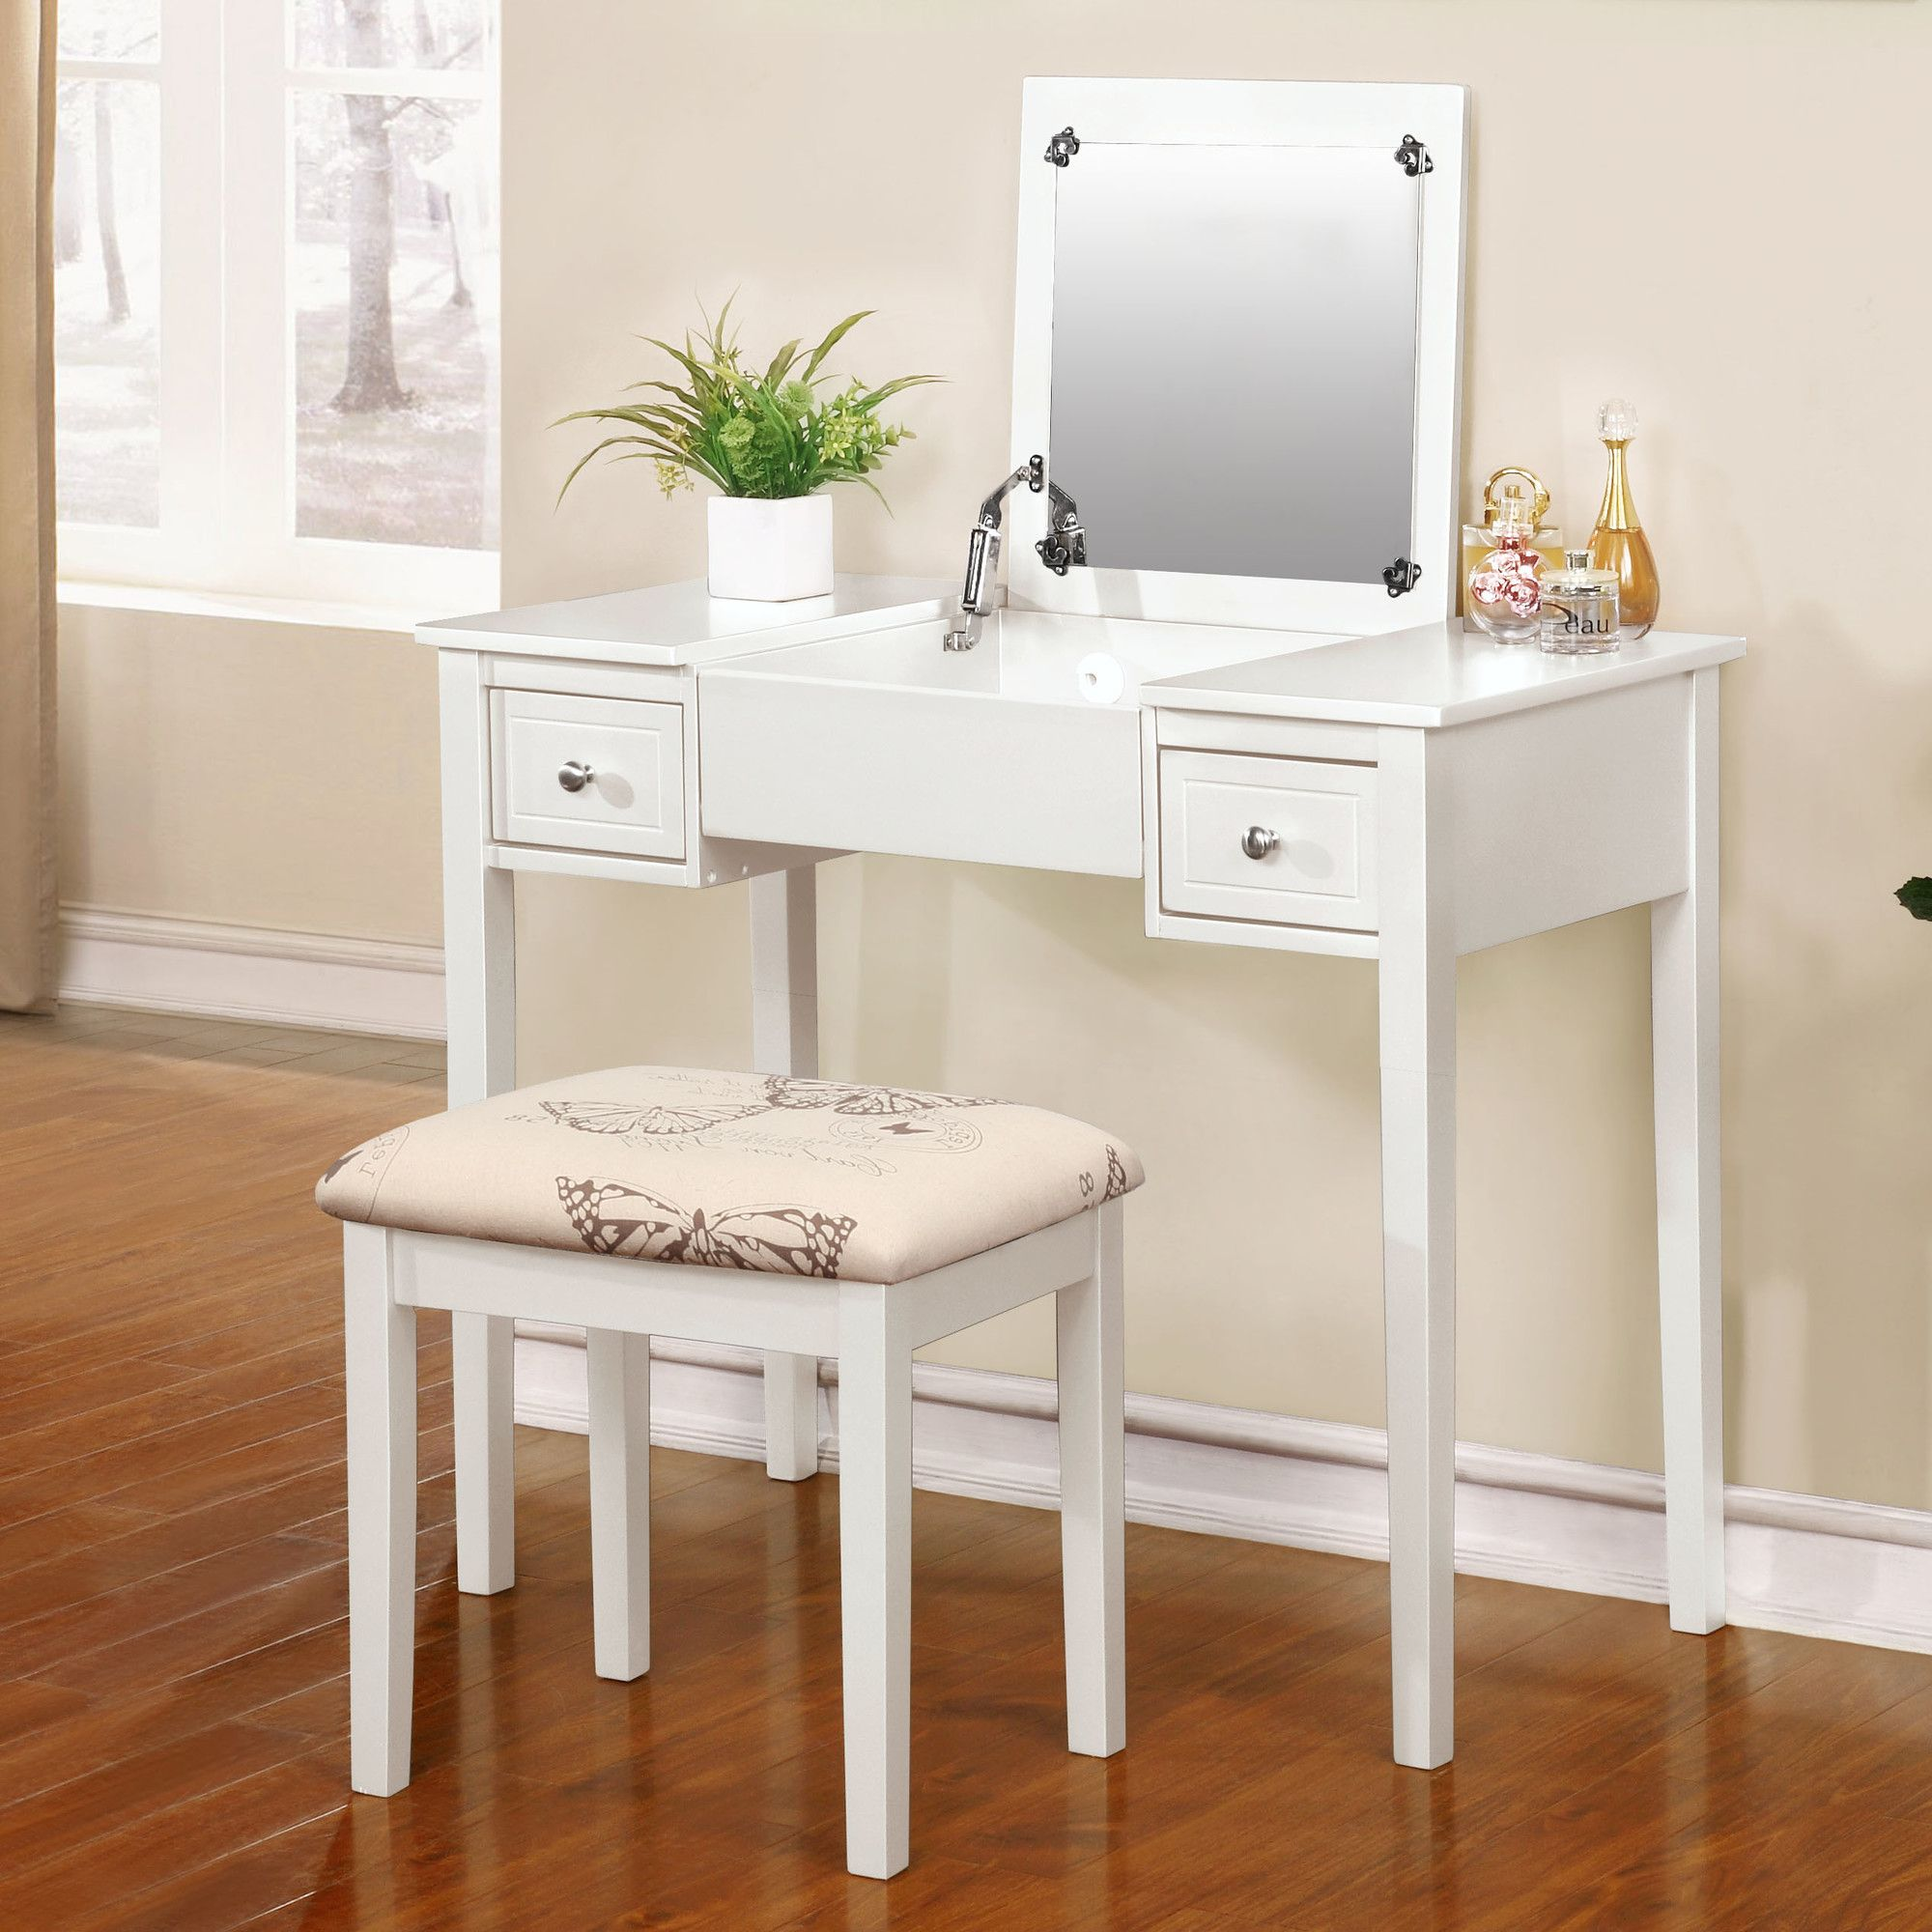 metal picture modern standing wooden and drawers rectangular makeup table with furniture bedrooms white also bedroom frame vanities chrome corner mirror round bathroom for desk vanity